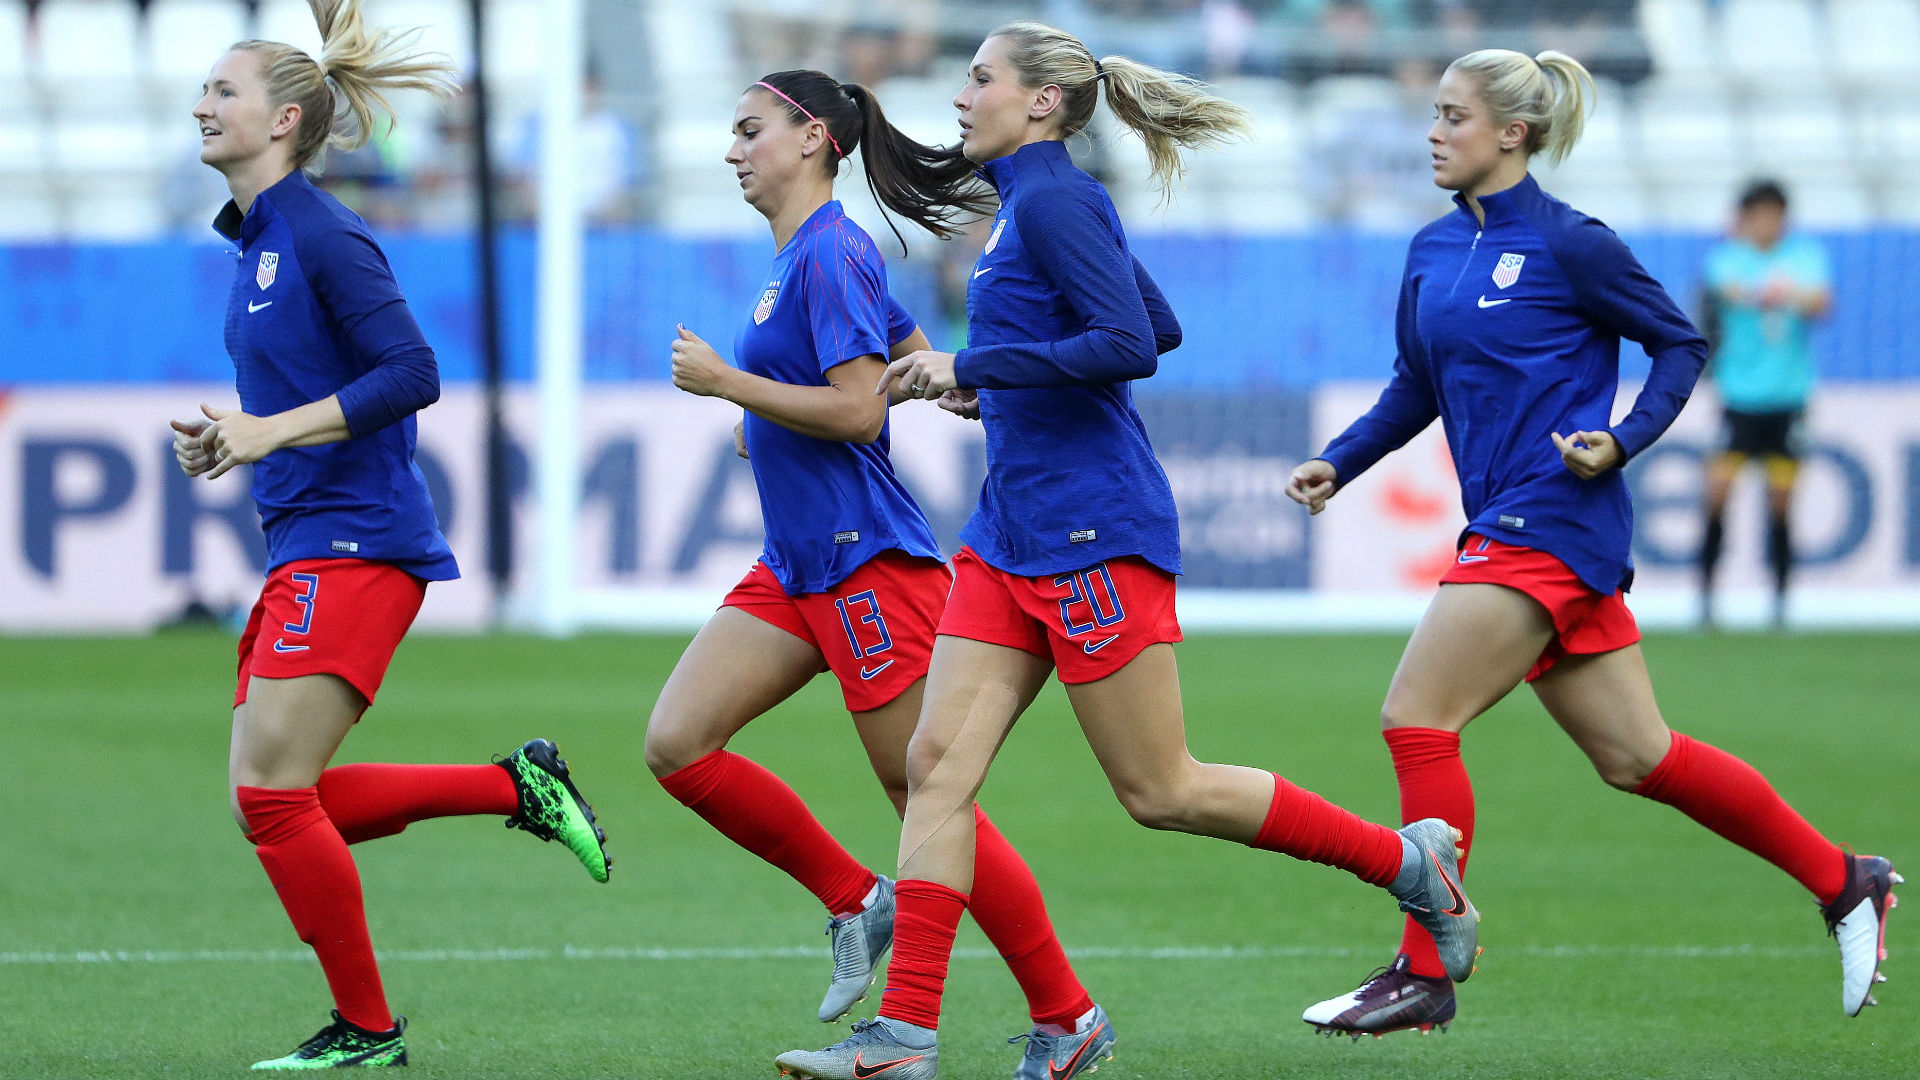 Women's World Cup 2019: Former USWNT players, fans wish USA good luck as first match gets underway